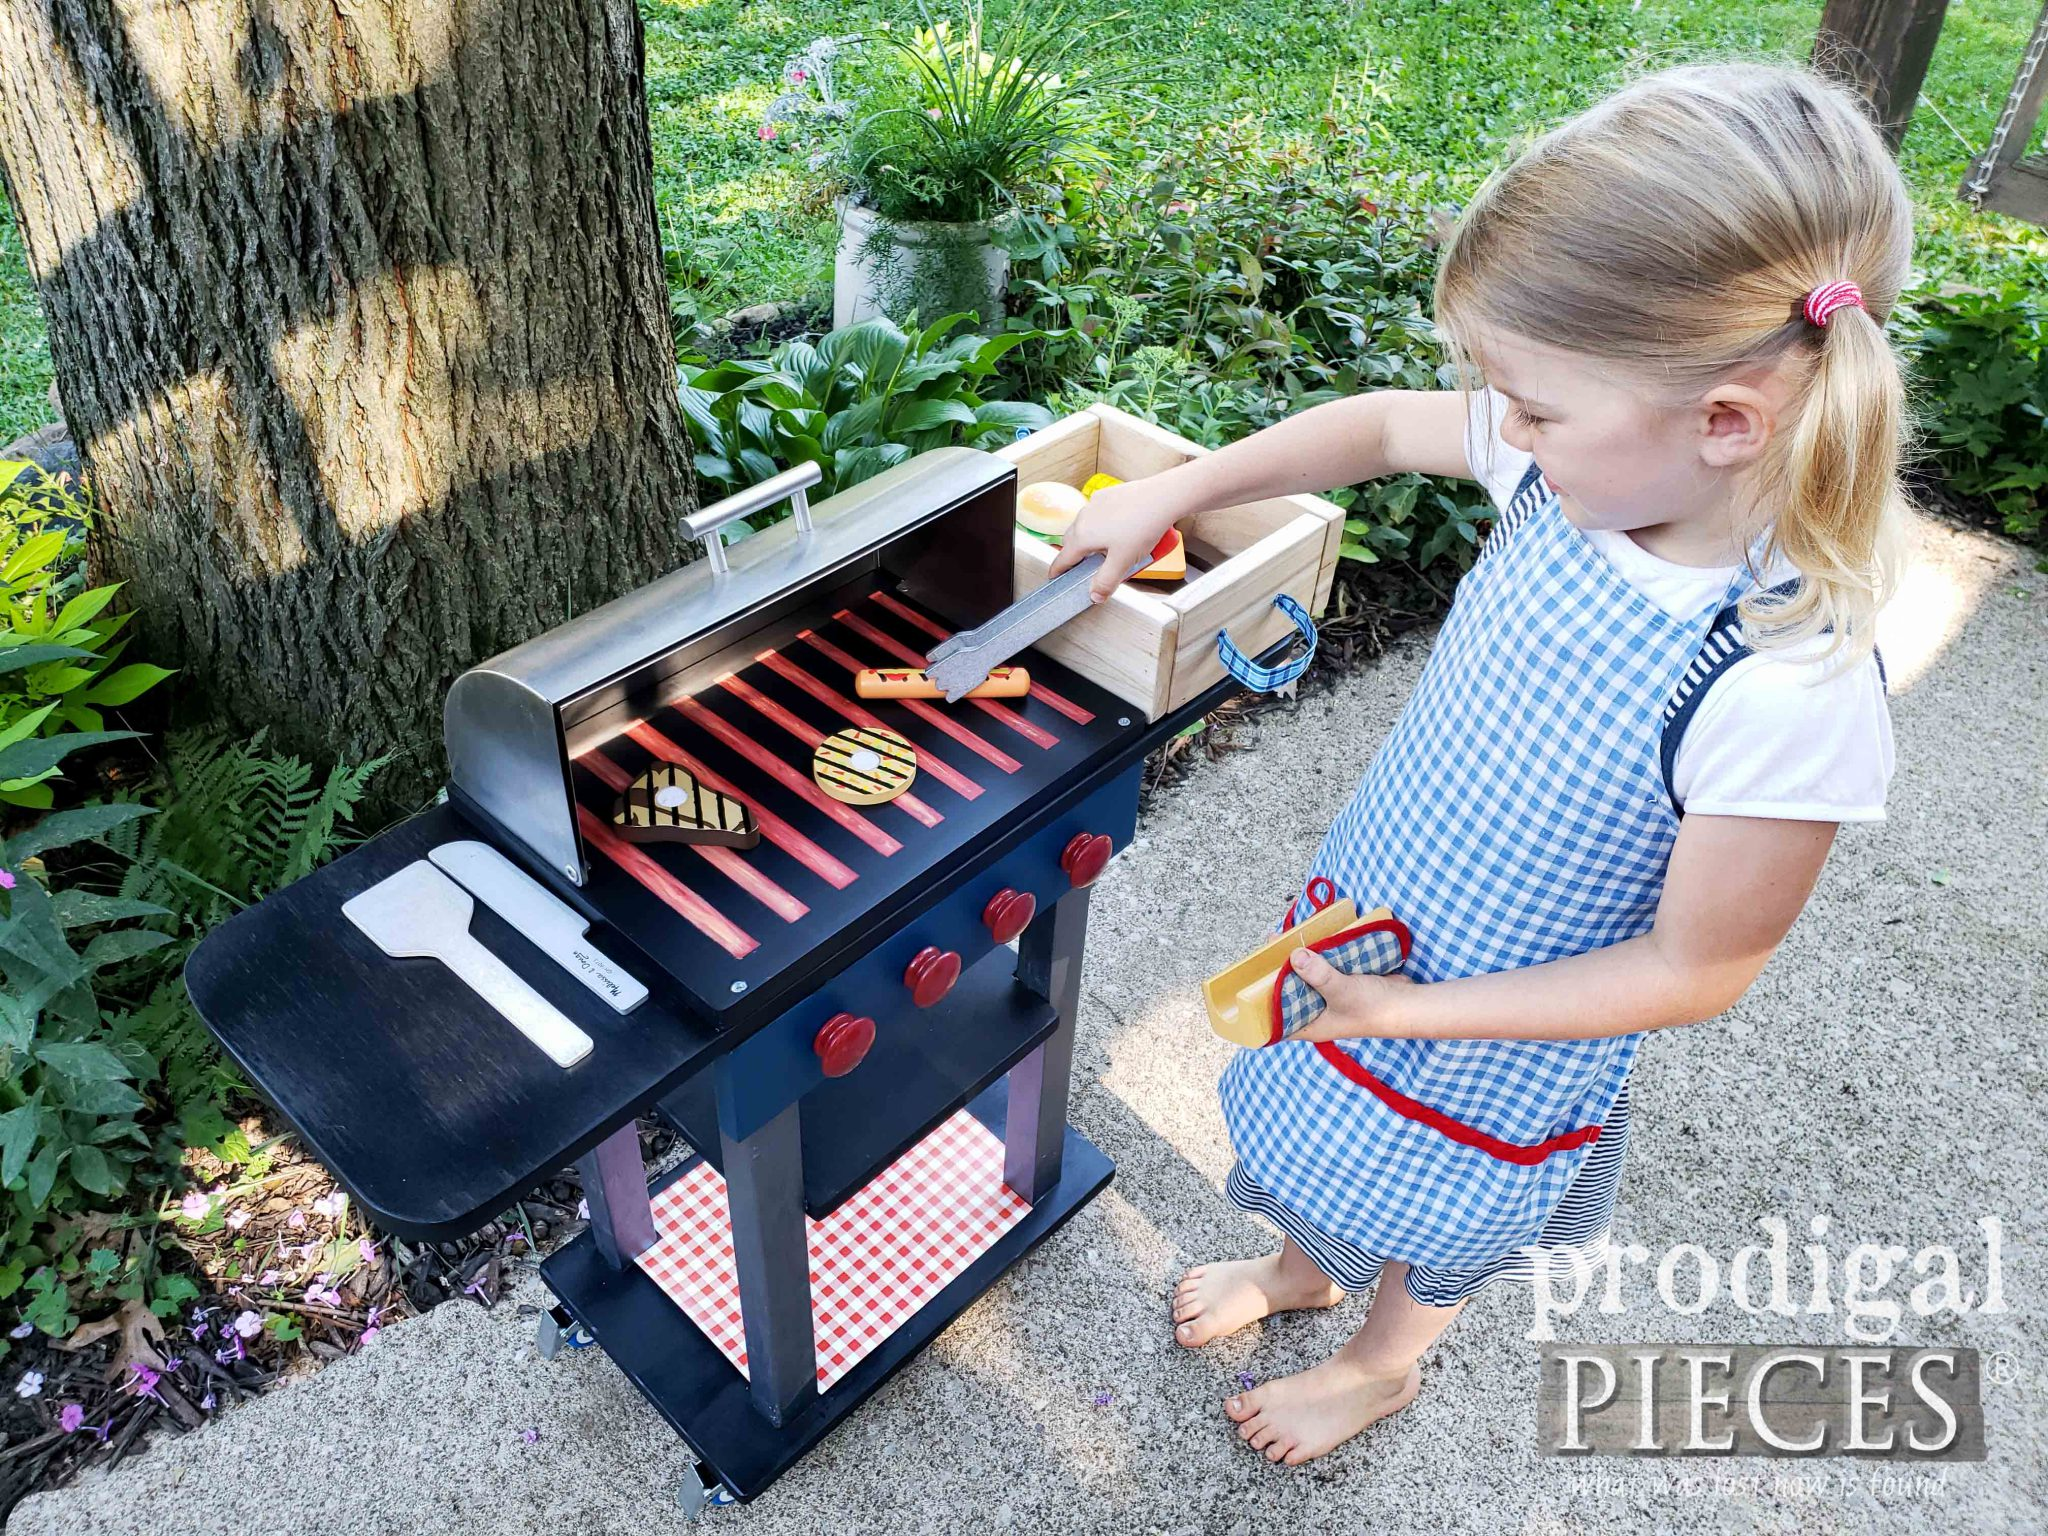 Adorable Pretend Play Grill Set made from Upcycled Bread Box | DIY fun at prodigalpieces.com #prodigalpieces #toys #handmade #kids #fun #pretend